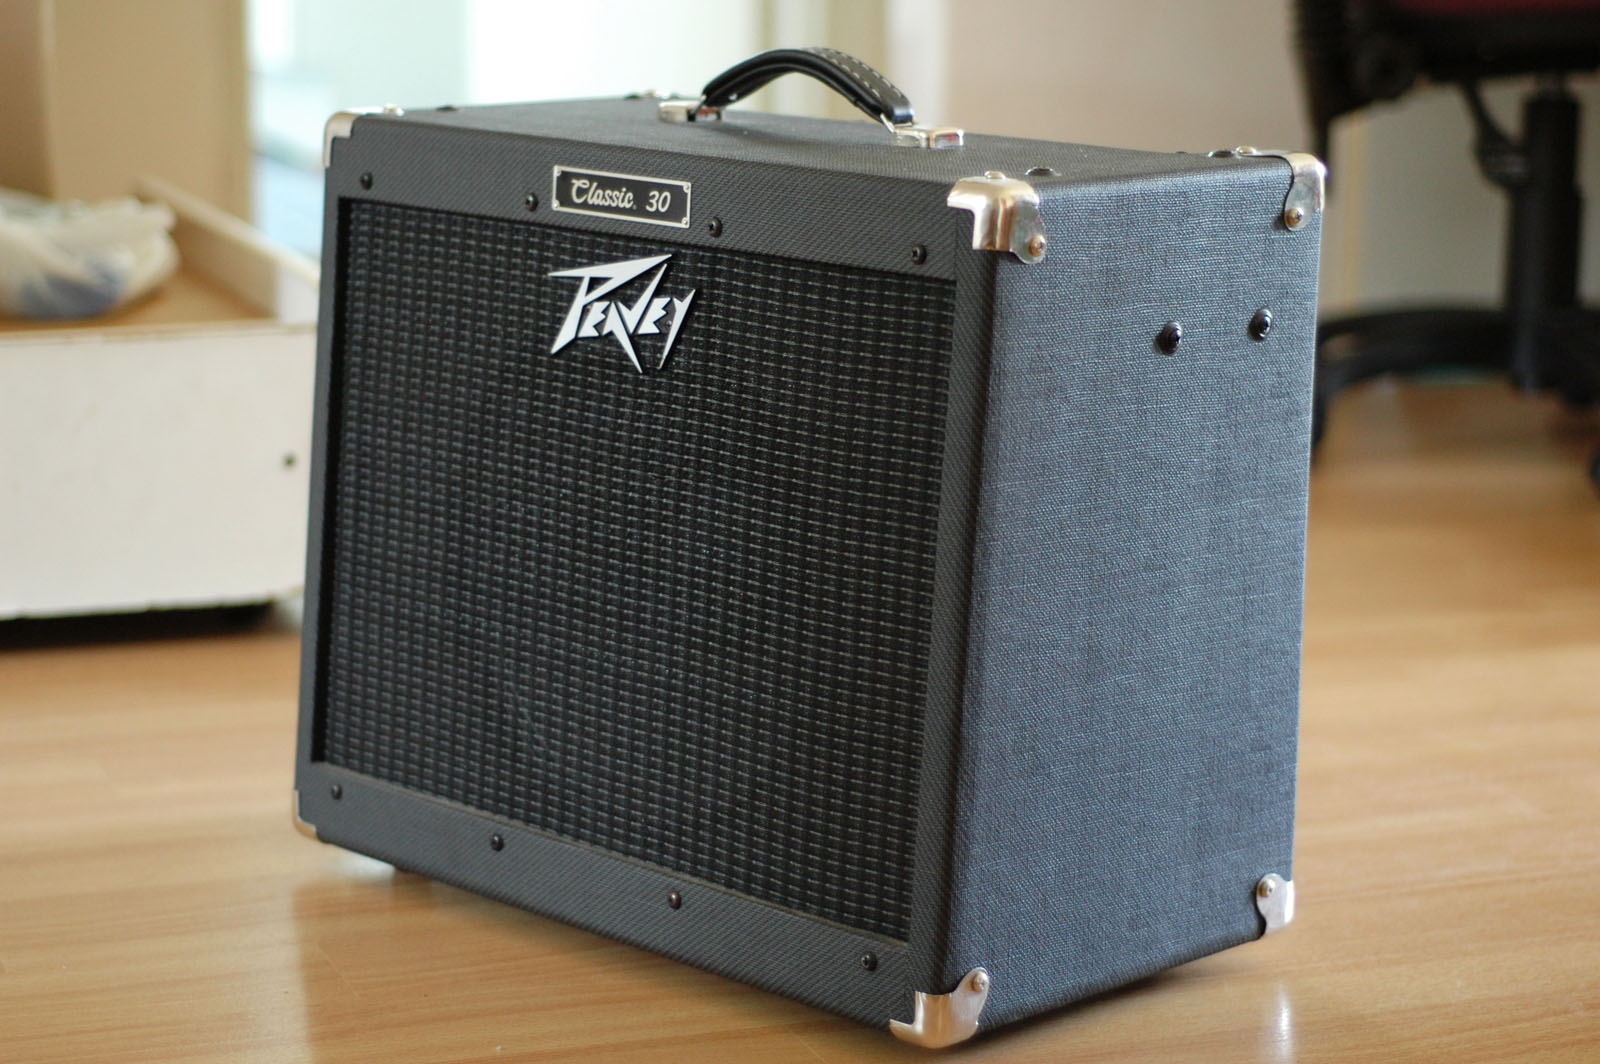 Peavey Classic 30 112 - Wikipedia, the free encyclopedia